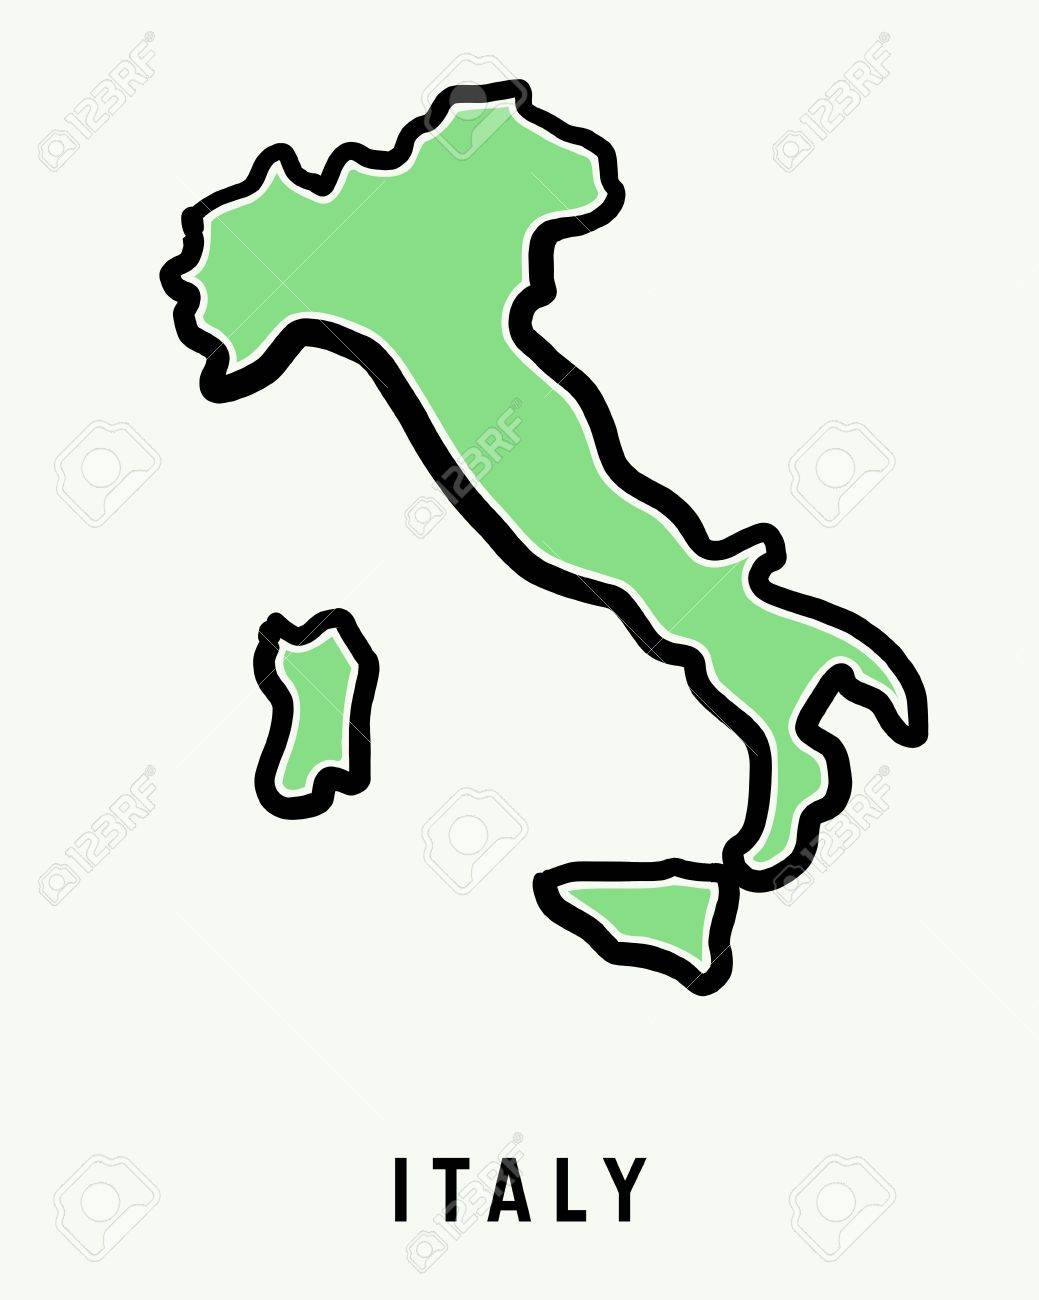 Map Of Italy Simple.Italy Simple Map Outline Simplified Country Shape Map Vector